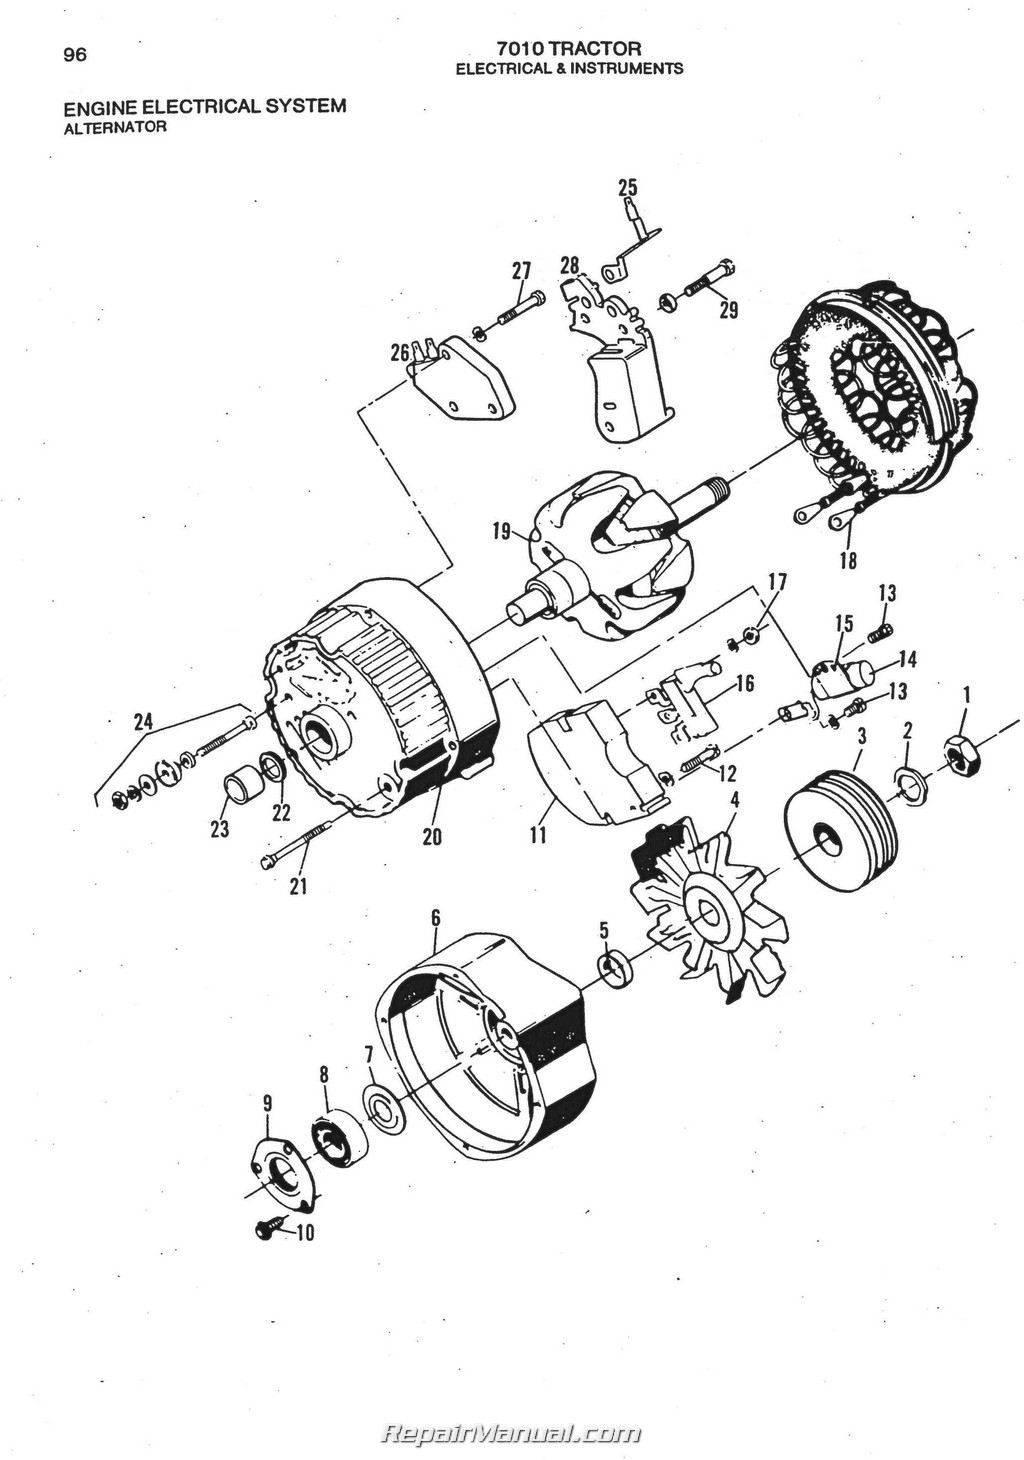 Allis Chalmers 7010 Diesel Parts Manual